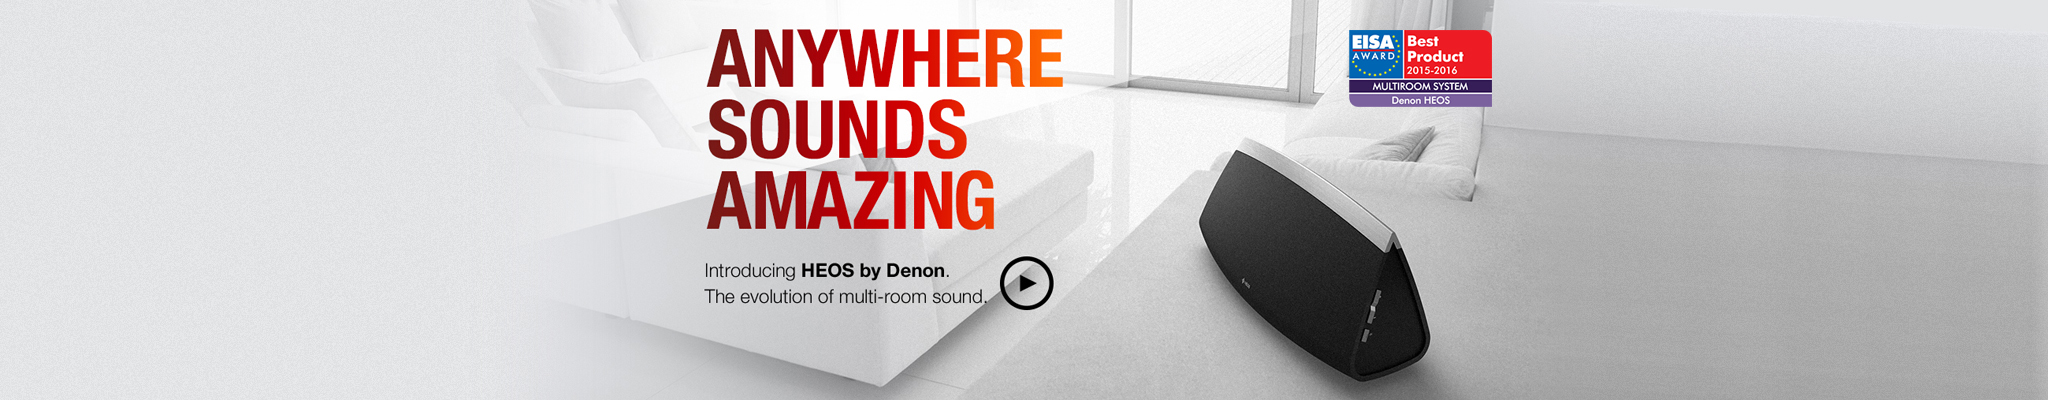 HEOS by Denon | Wireless Multi-Room Speaker System